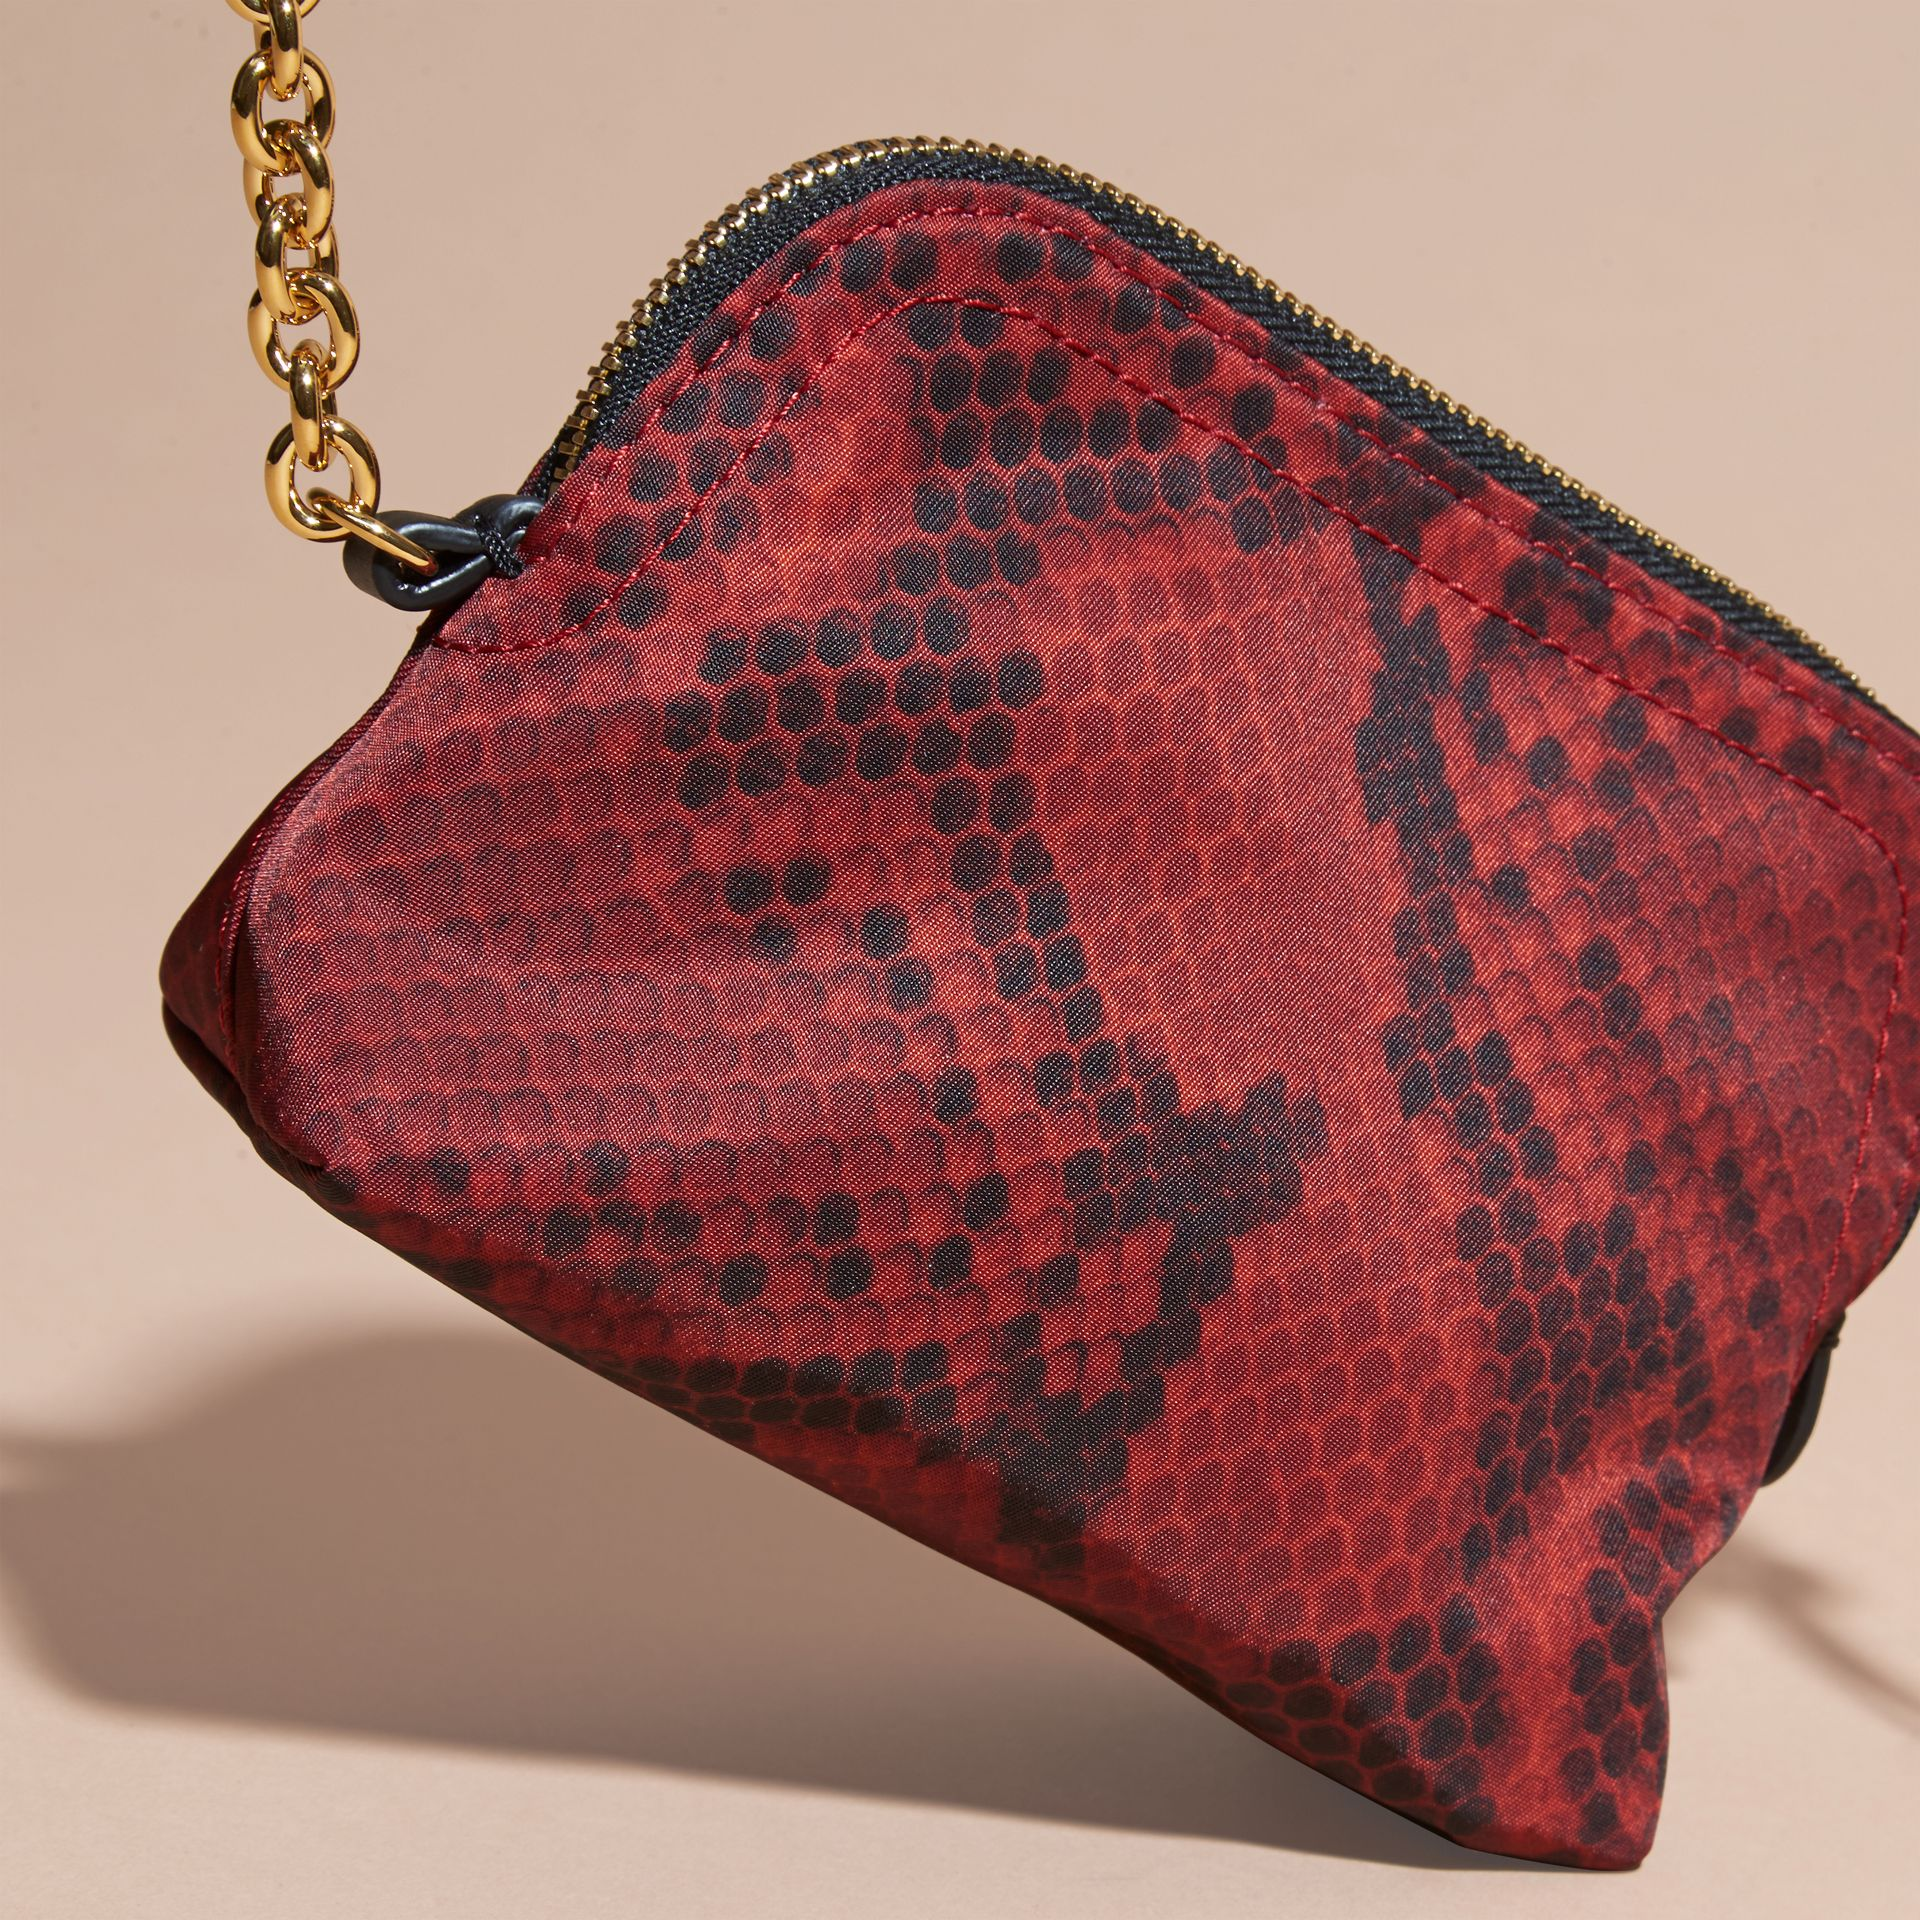 Rouge bourgogne Pochette zippée en nylon technique à imprimé python Rouge Bourgogne - photo de la galerie 3